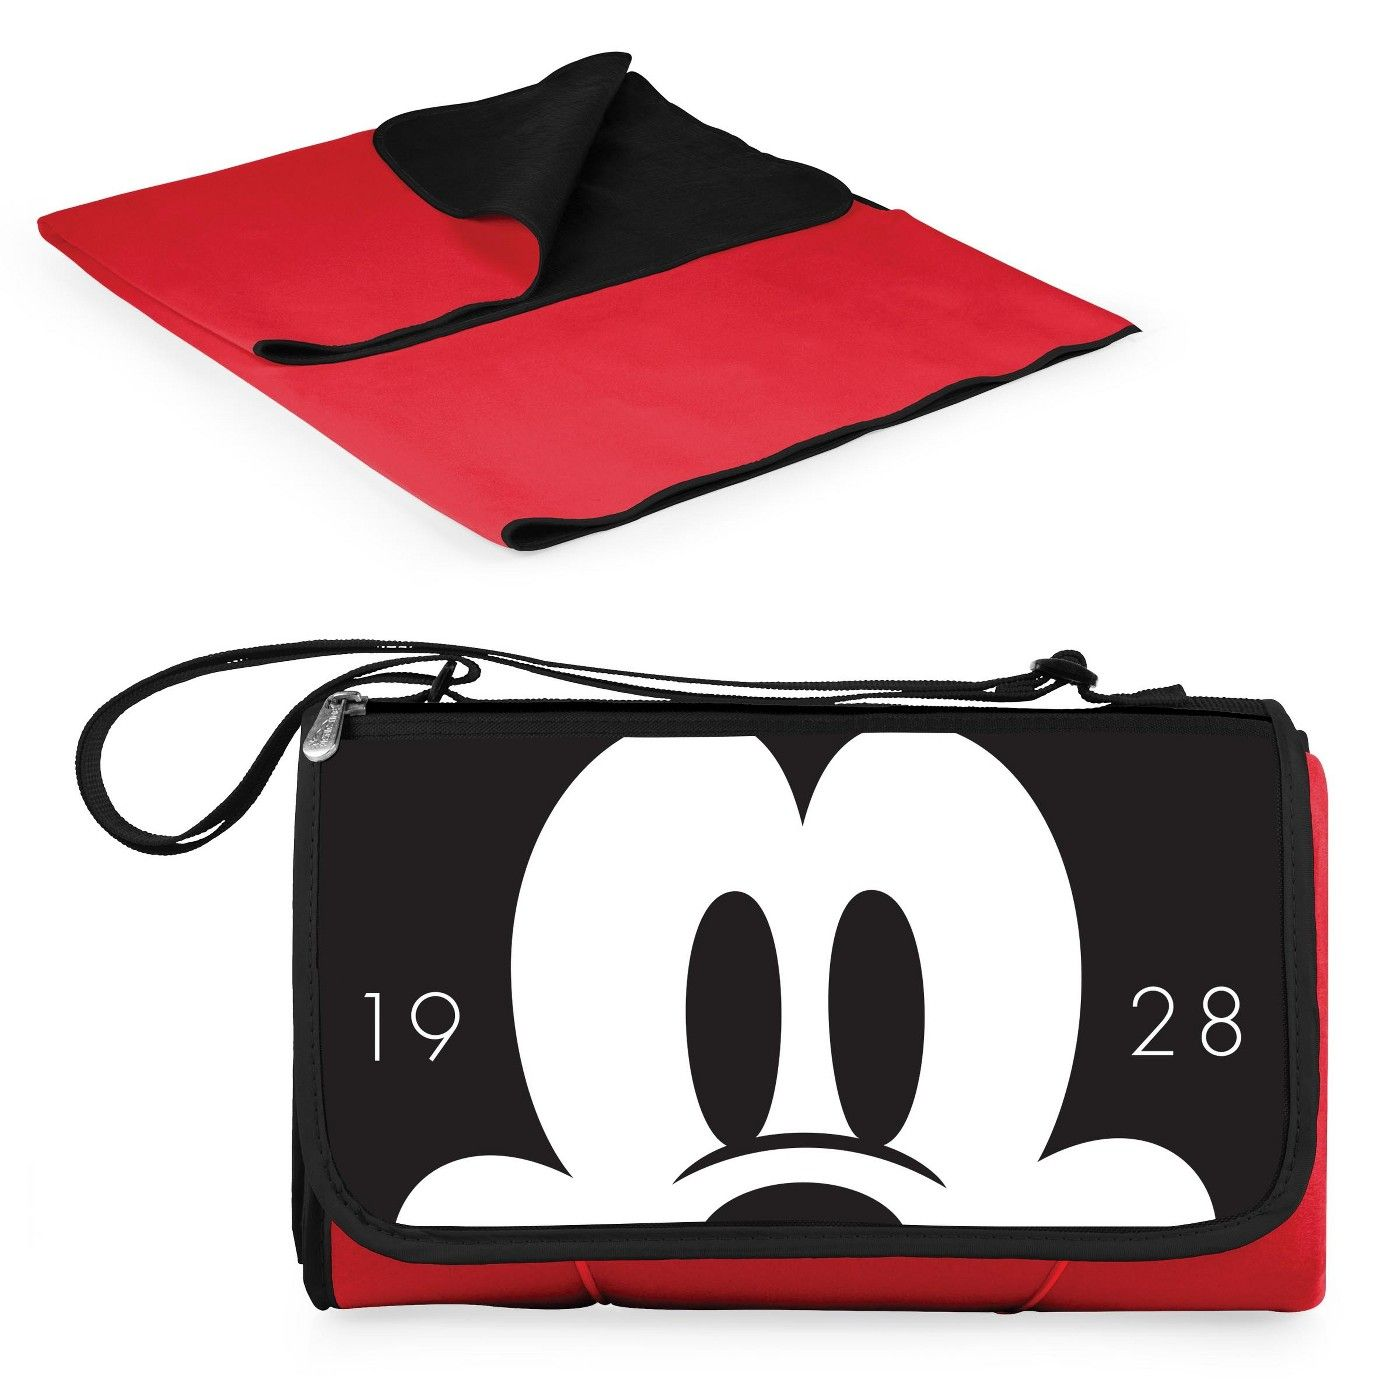 8d05f9948d Picnic Time Disney Mickey Mouse Outdoor Picnic Blanket Tote - Red  Disney